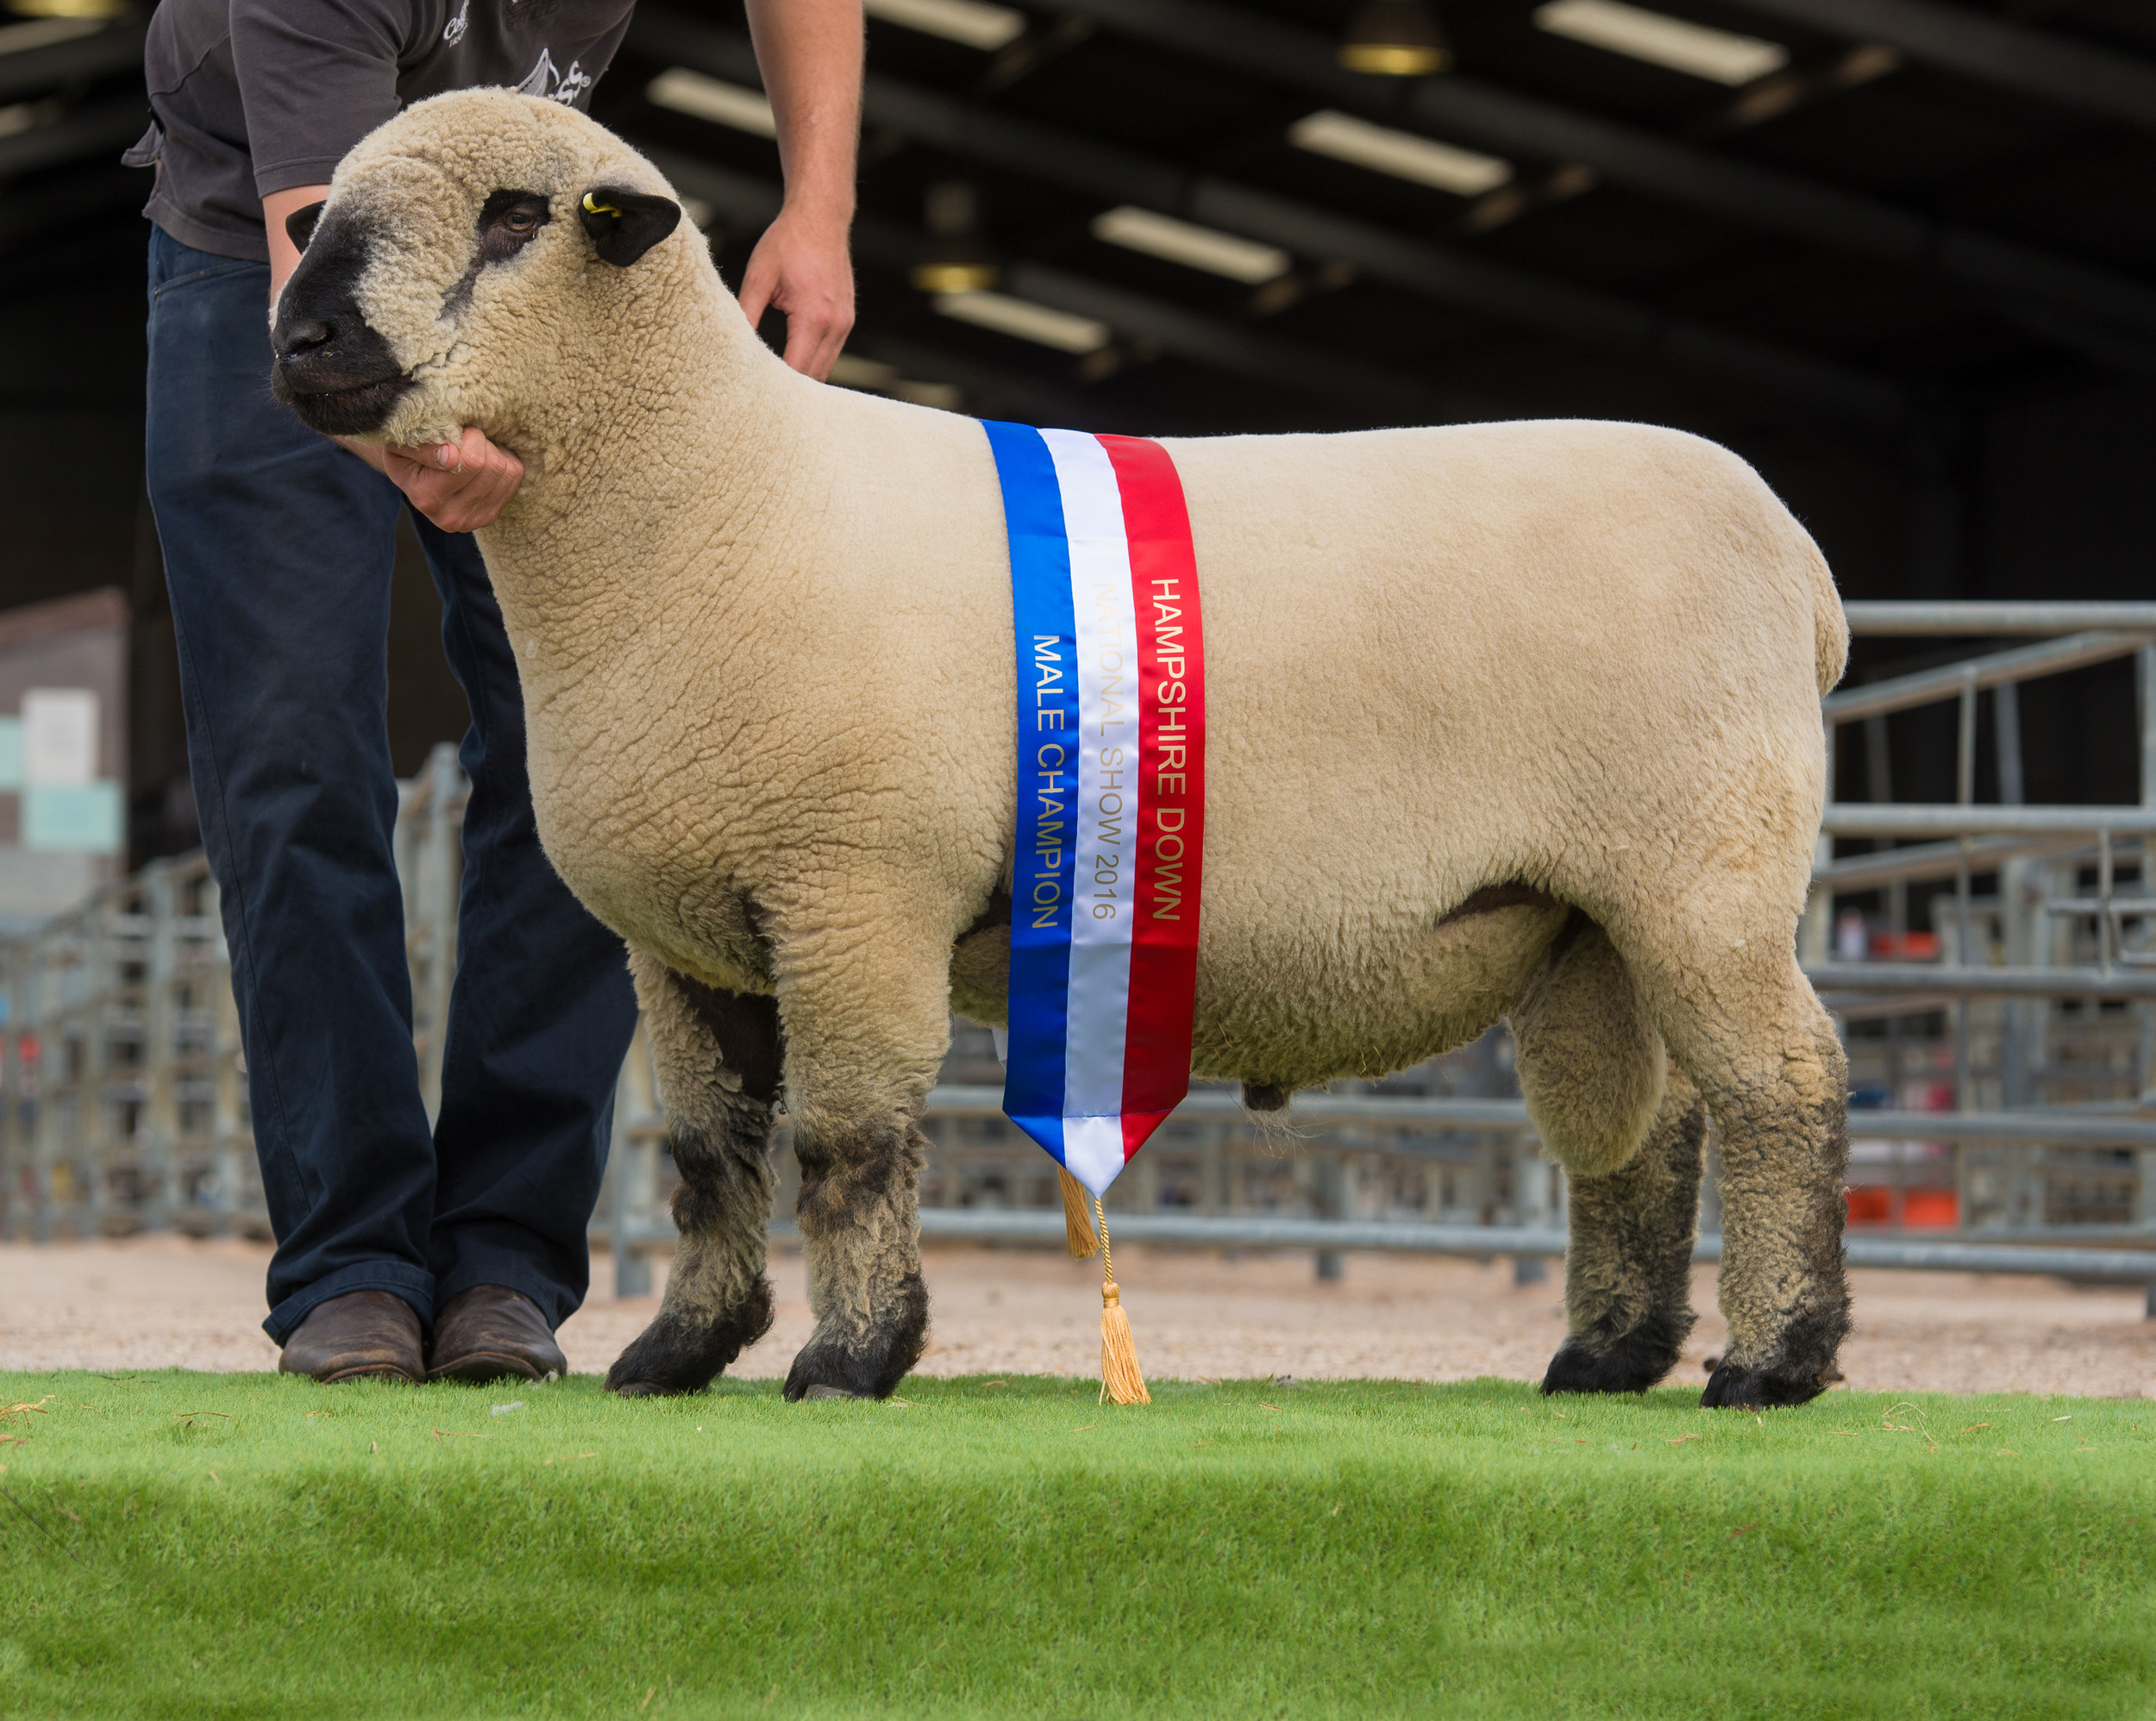 Breed Champion. Shearling Ram from EAST FORTUNE